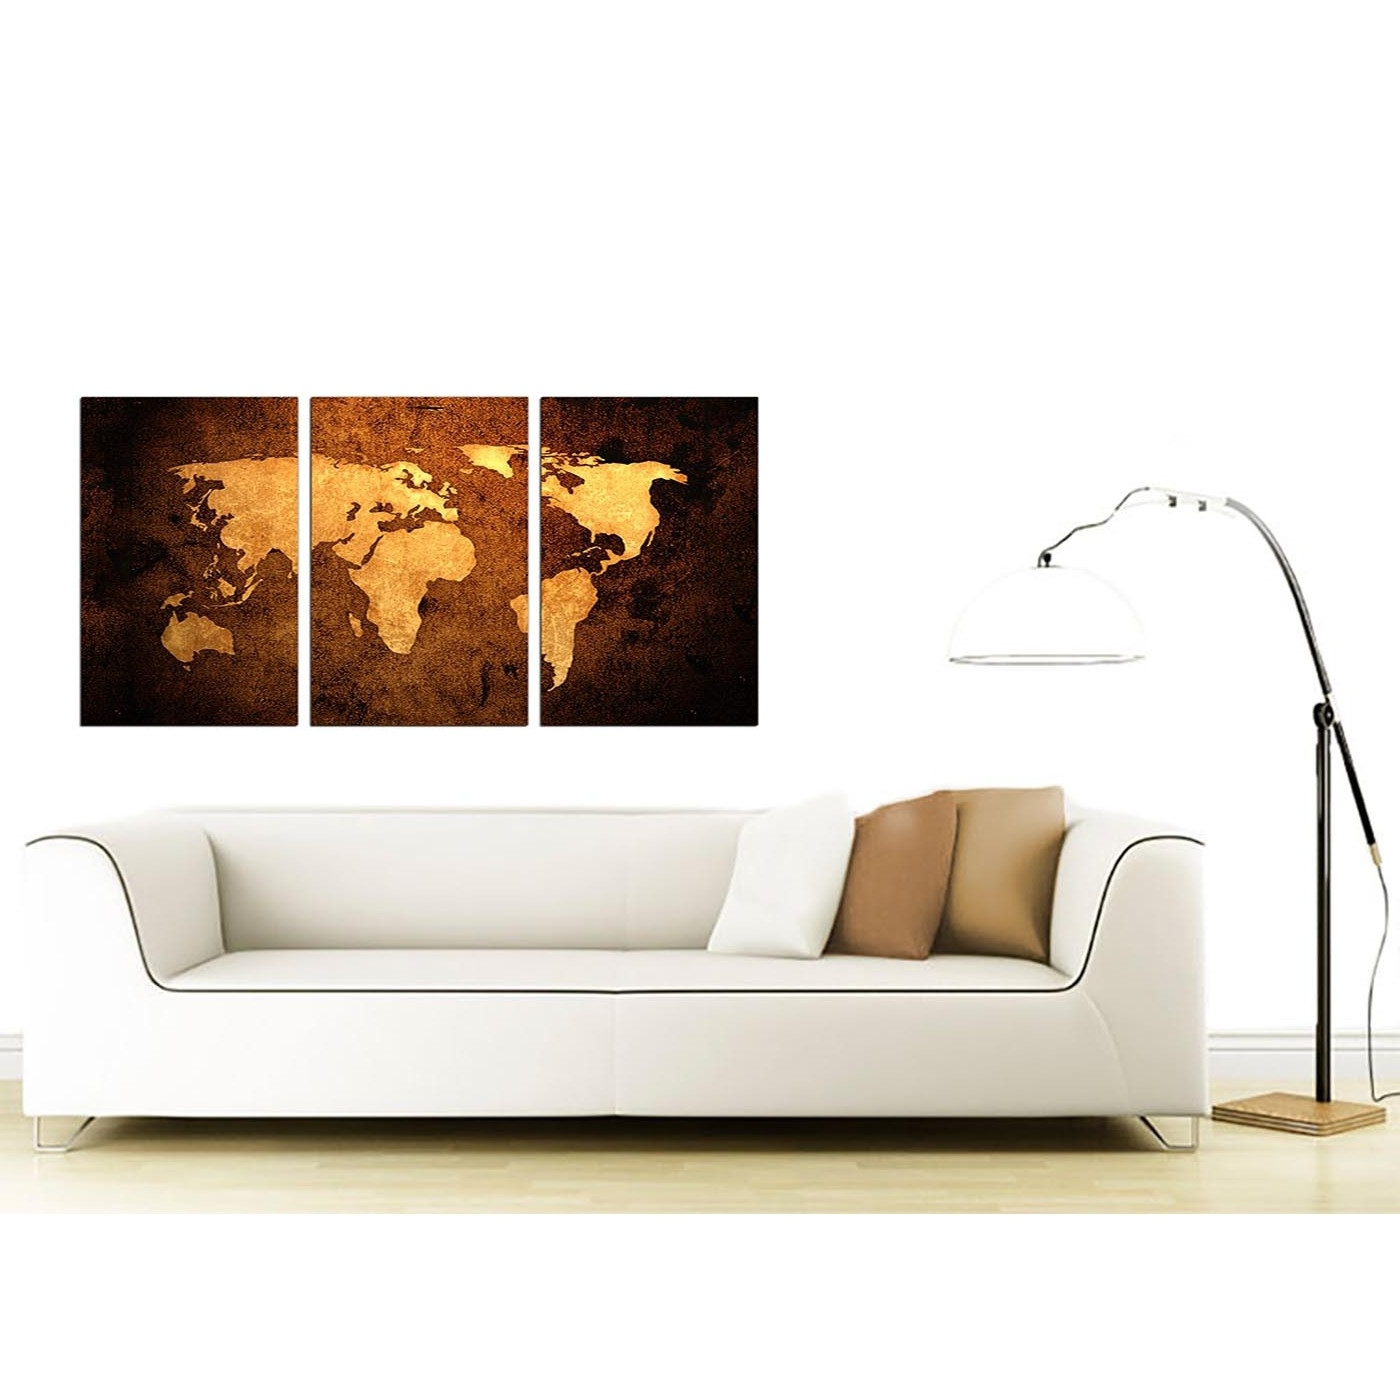 Widely Used Vintage World Map Canvas Wall Art Set Of 3 For Your Bedroom Intended For Canvas Wall Art Sets (View 14 of 15)